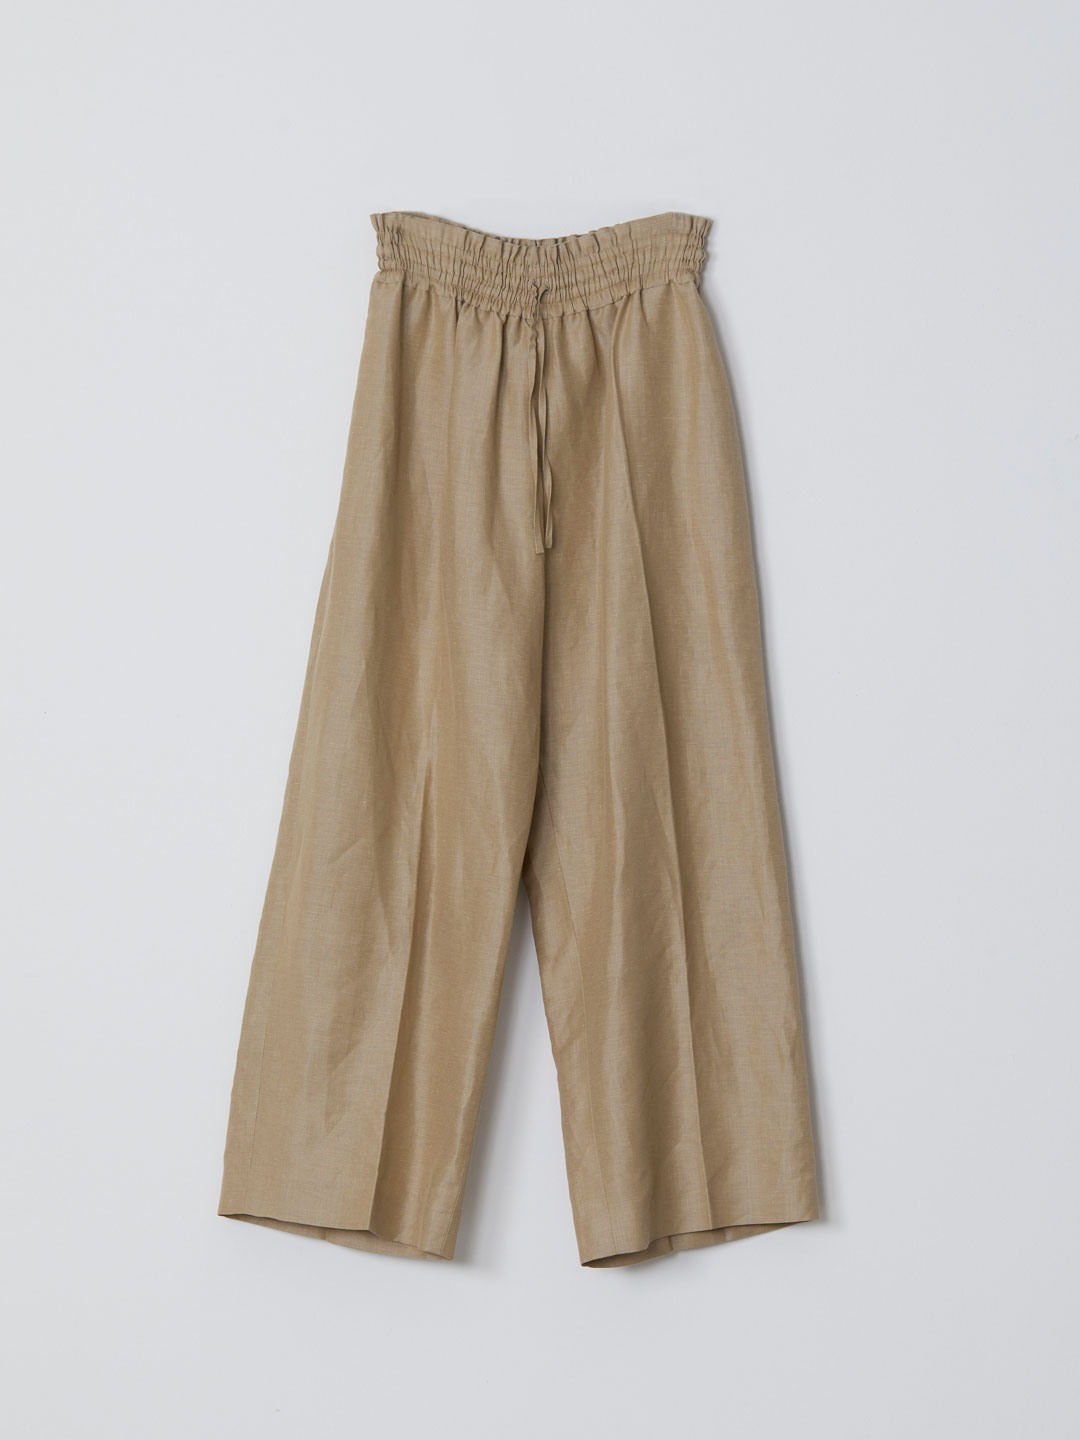 No 0222 Linen Silk Wide Trousers - Beige